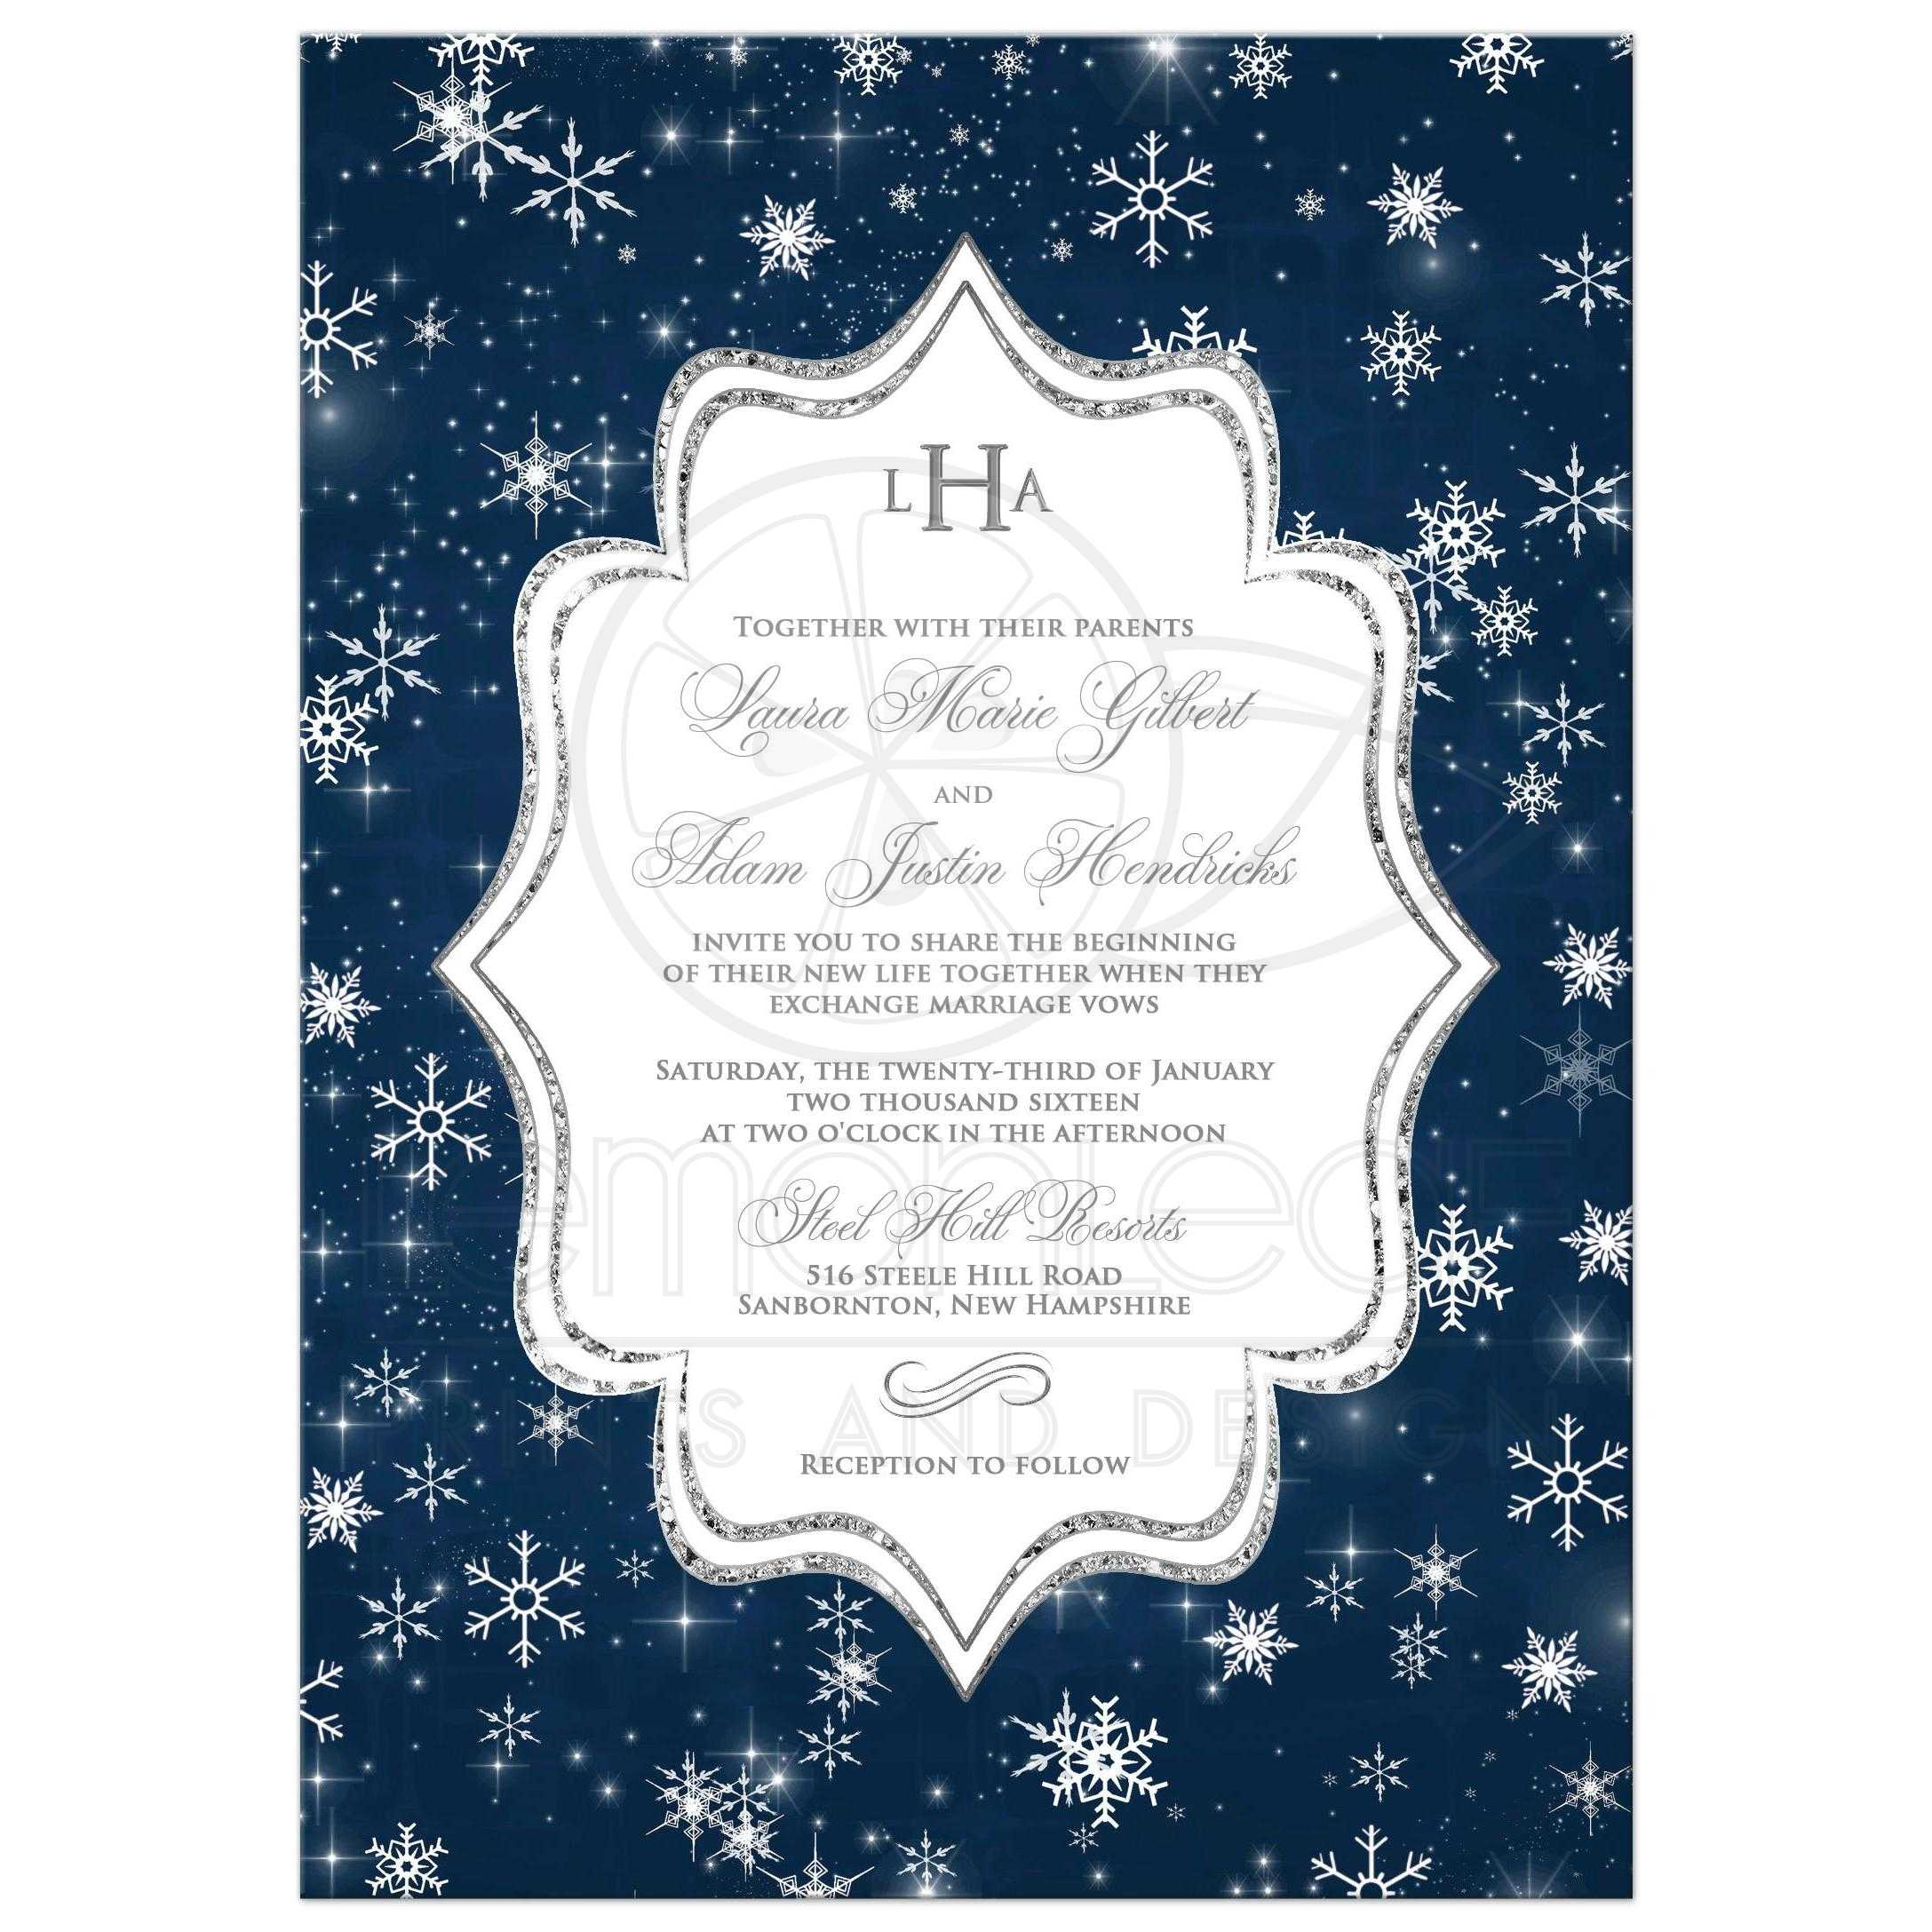 Wonderful Winter Wonderland Wedding Invitation In Navy Blue, White And Silver  Snowflakes And Glitter ...